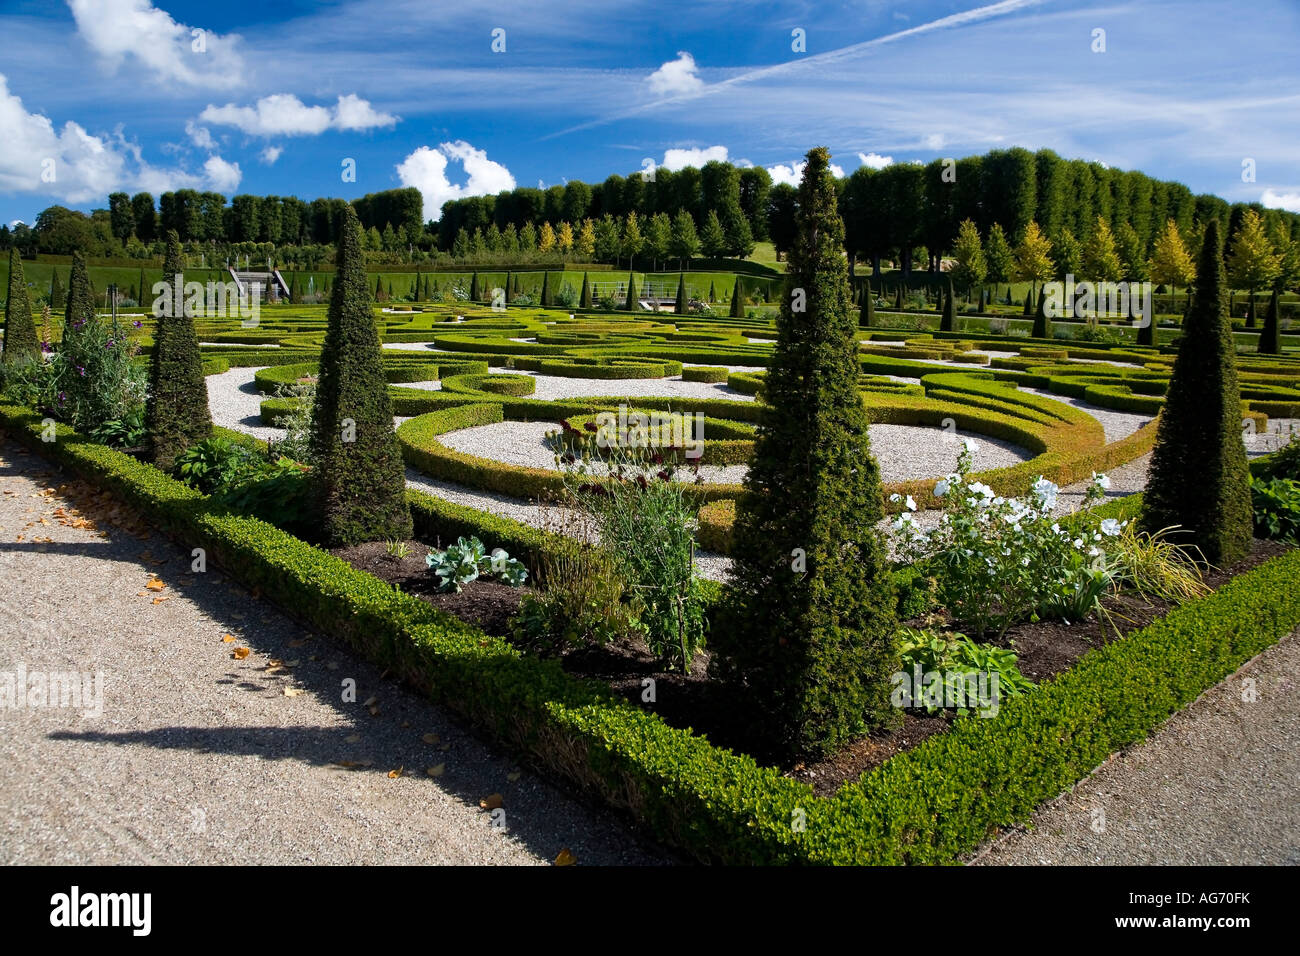 The baroque style garden at Frederiksborg Castle - Stock Image